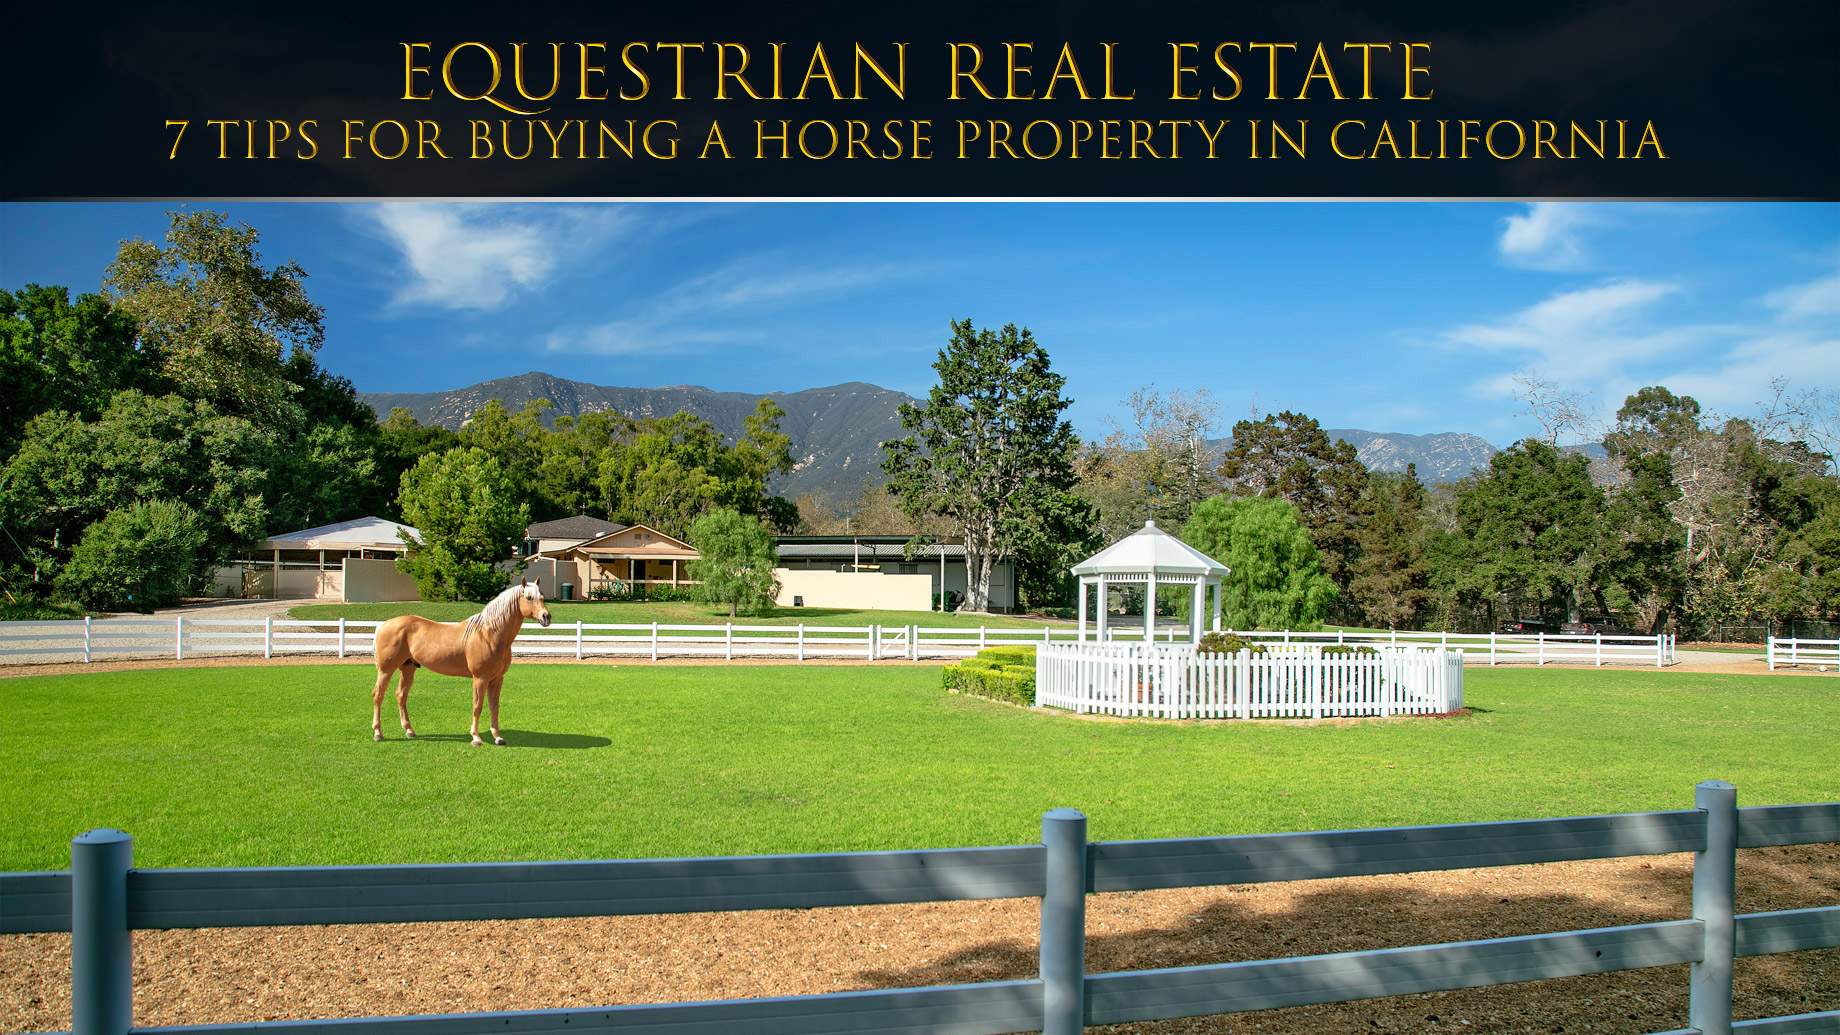 Equestrian Real Estate – 7 Tips for Buying A Horse Property In California